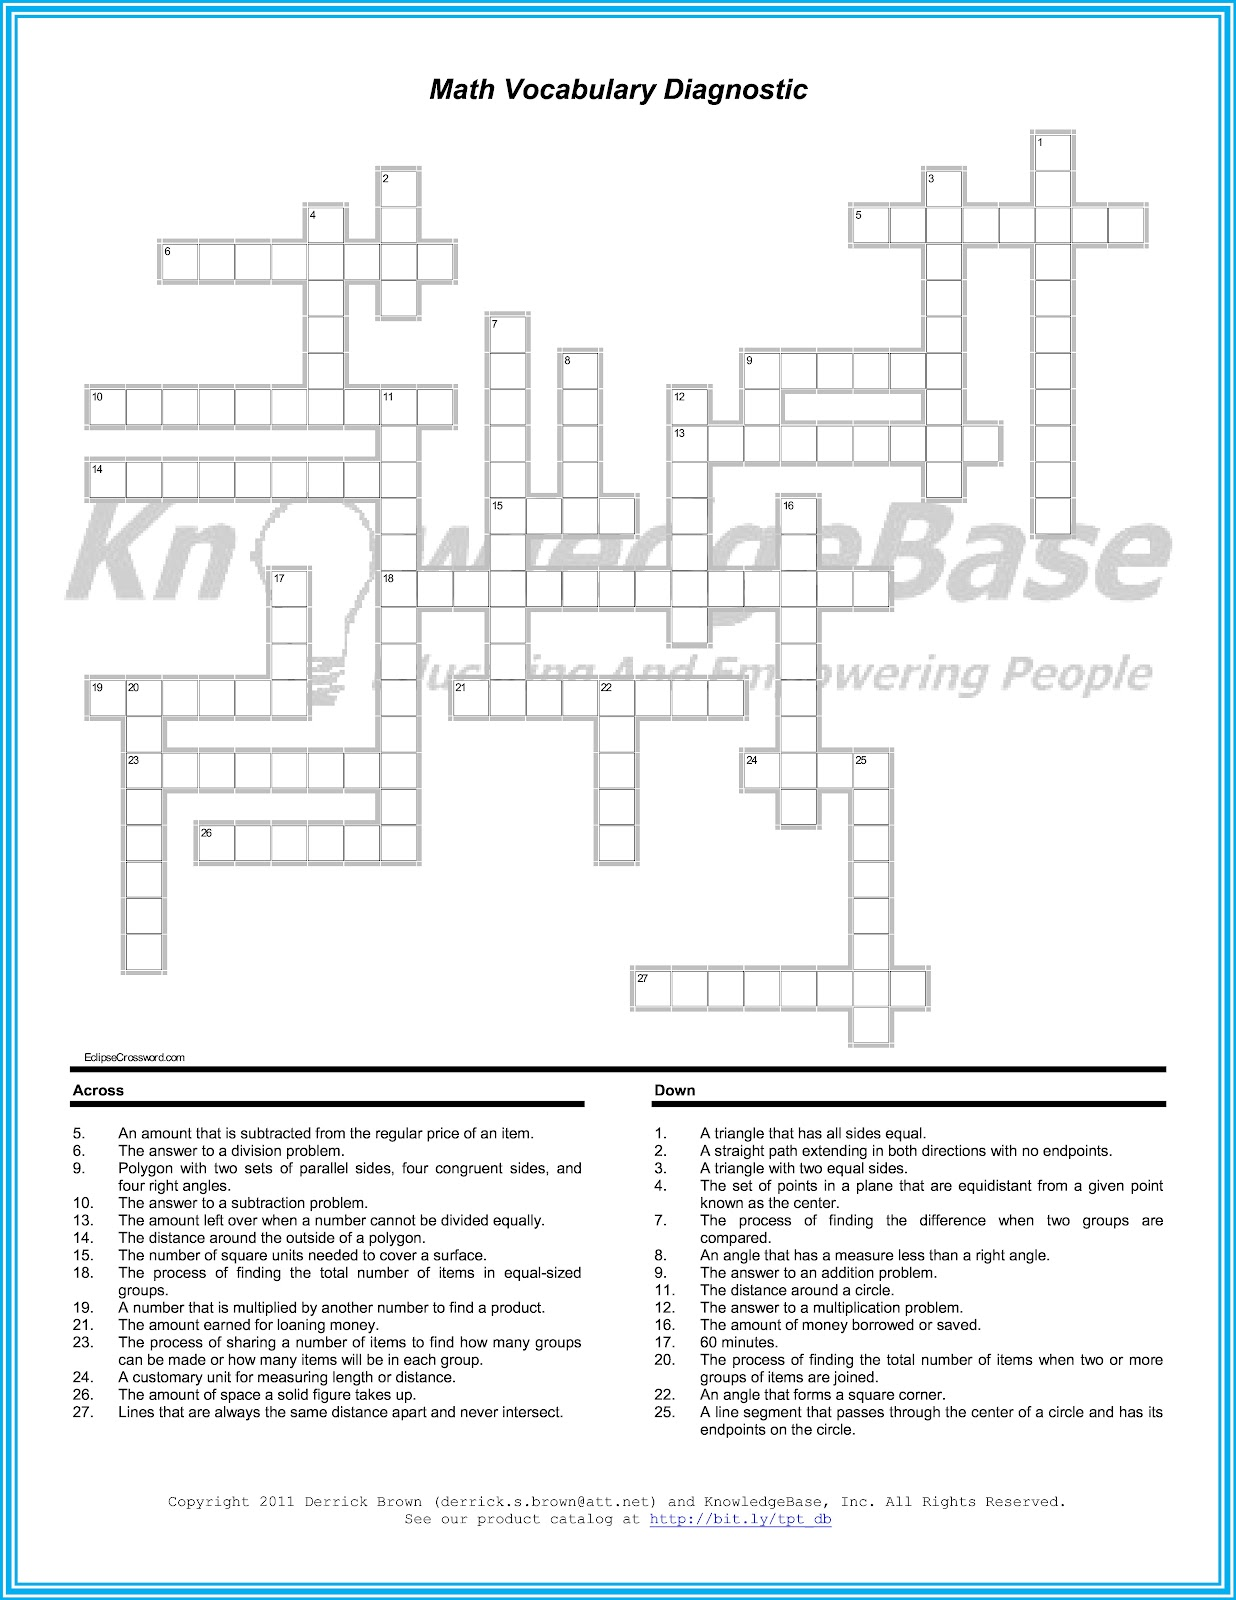 Reachthenteach Big Ideas About Math Education Math Crossword Puzzle Vocabulary Diagnostic